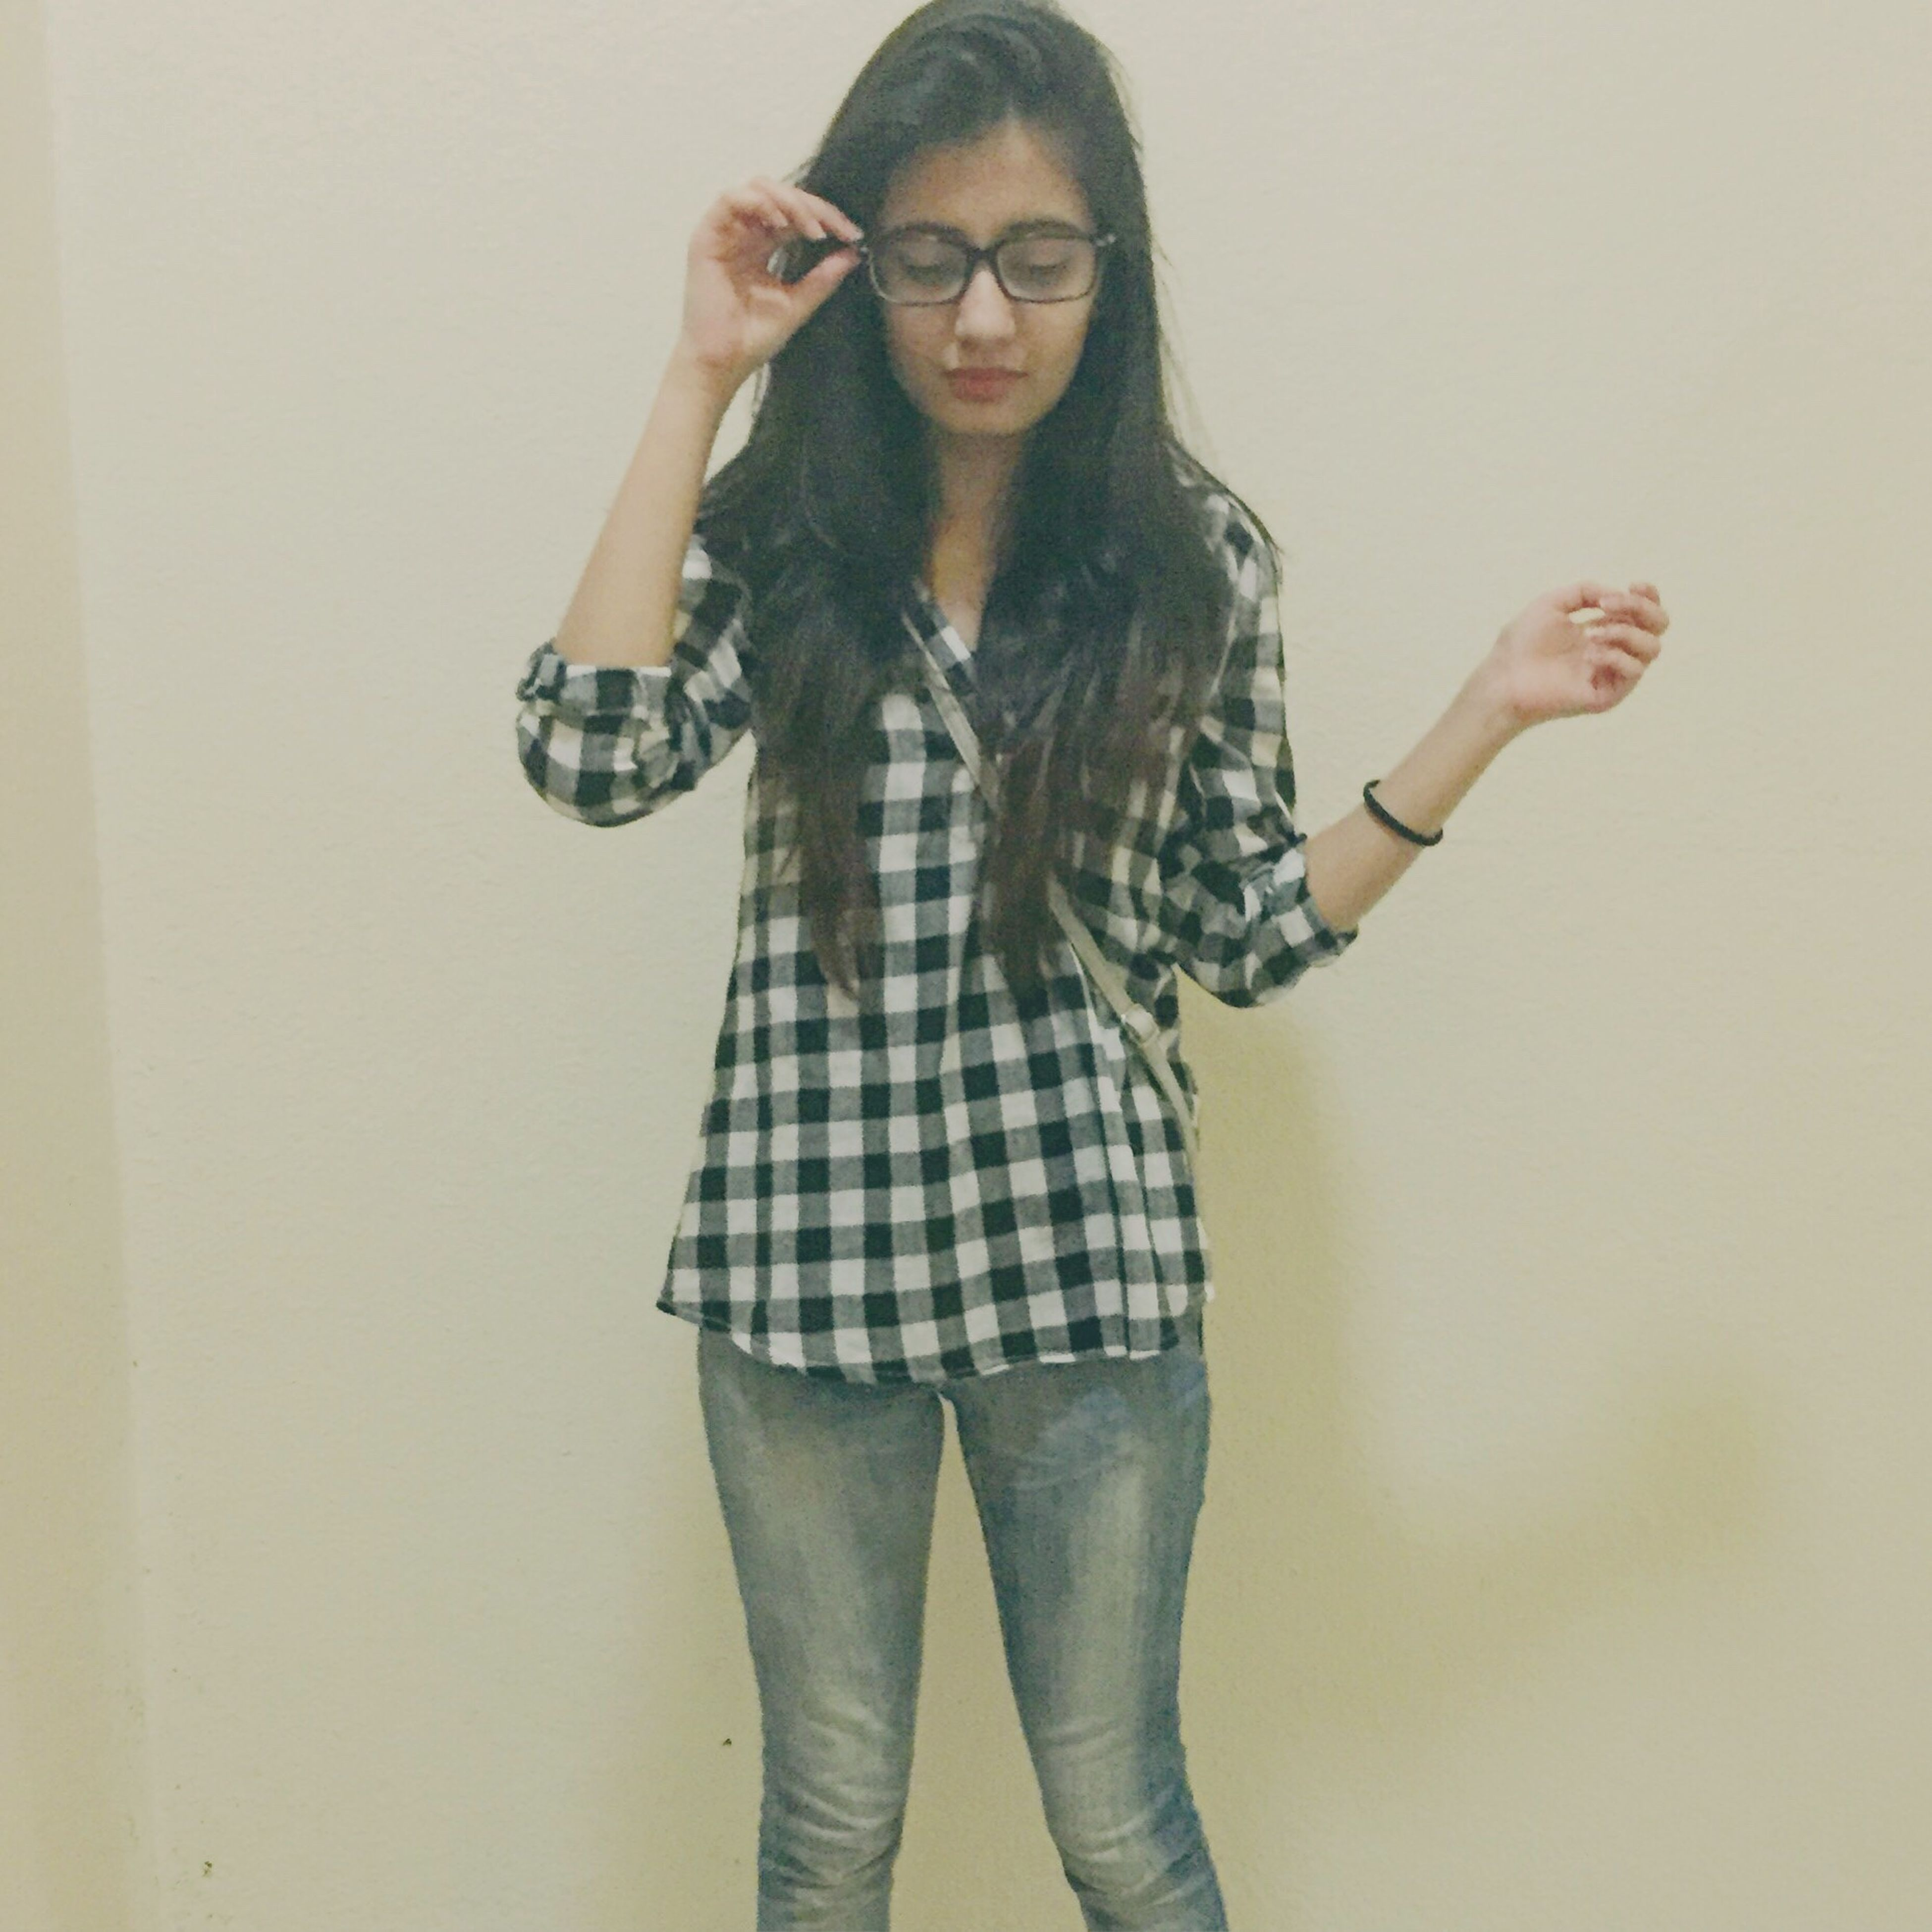 young adult, young women, lifestyles, front view, person, standing, casual clothing, looking at camera, three quarter length, portrait, leisure activity, long hair, wall - building feature, fashion, indoors, full length, beauty